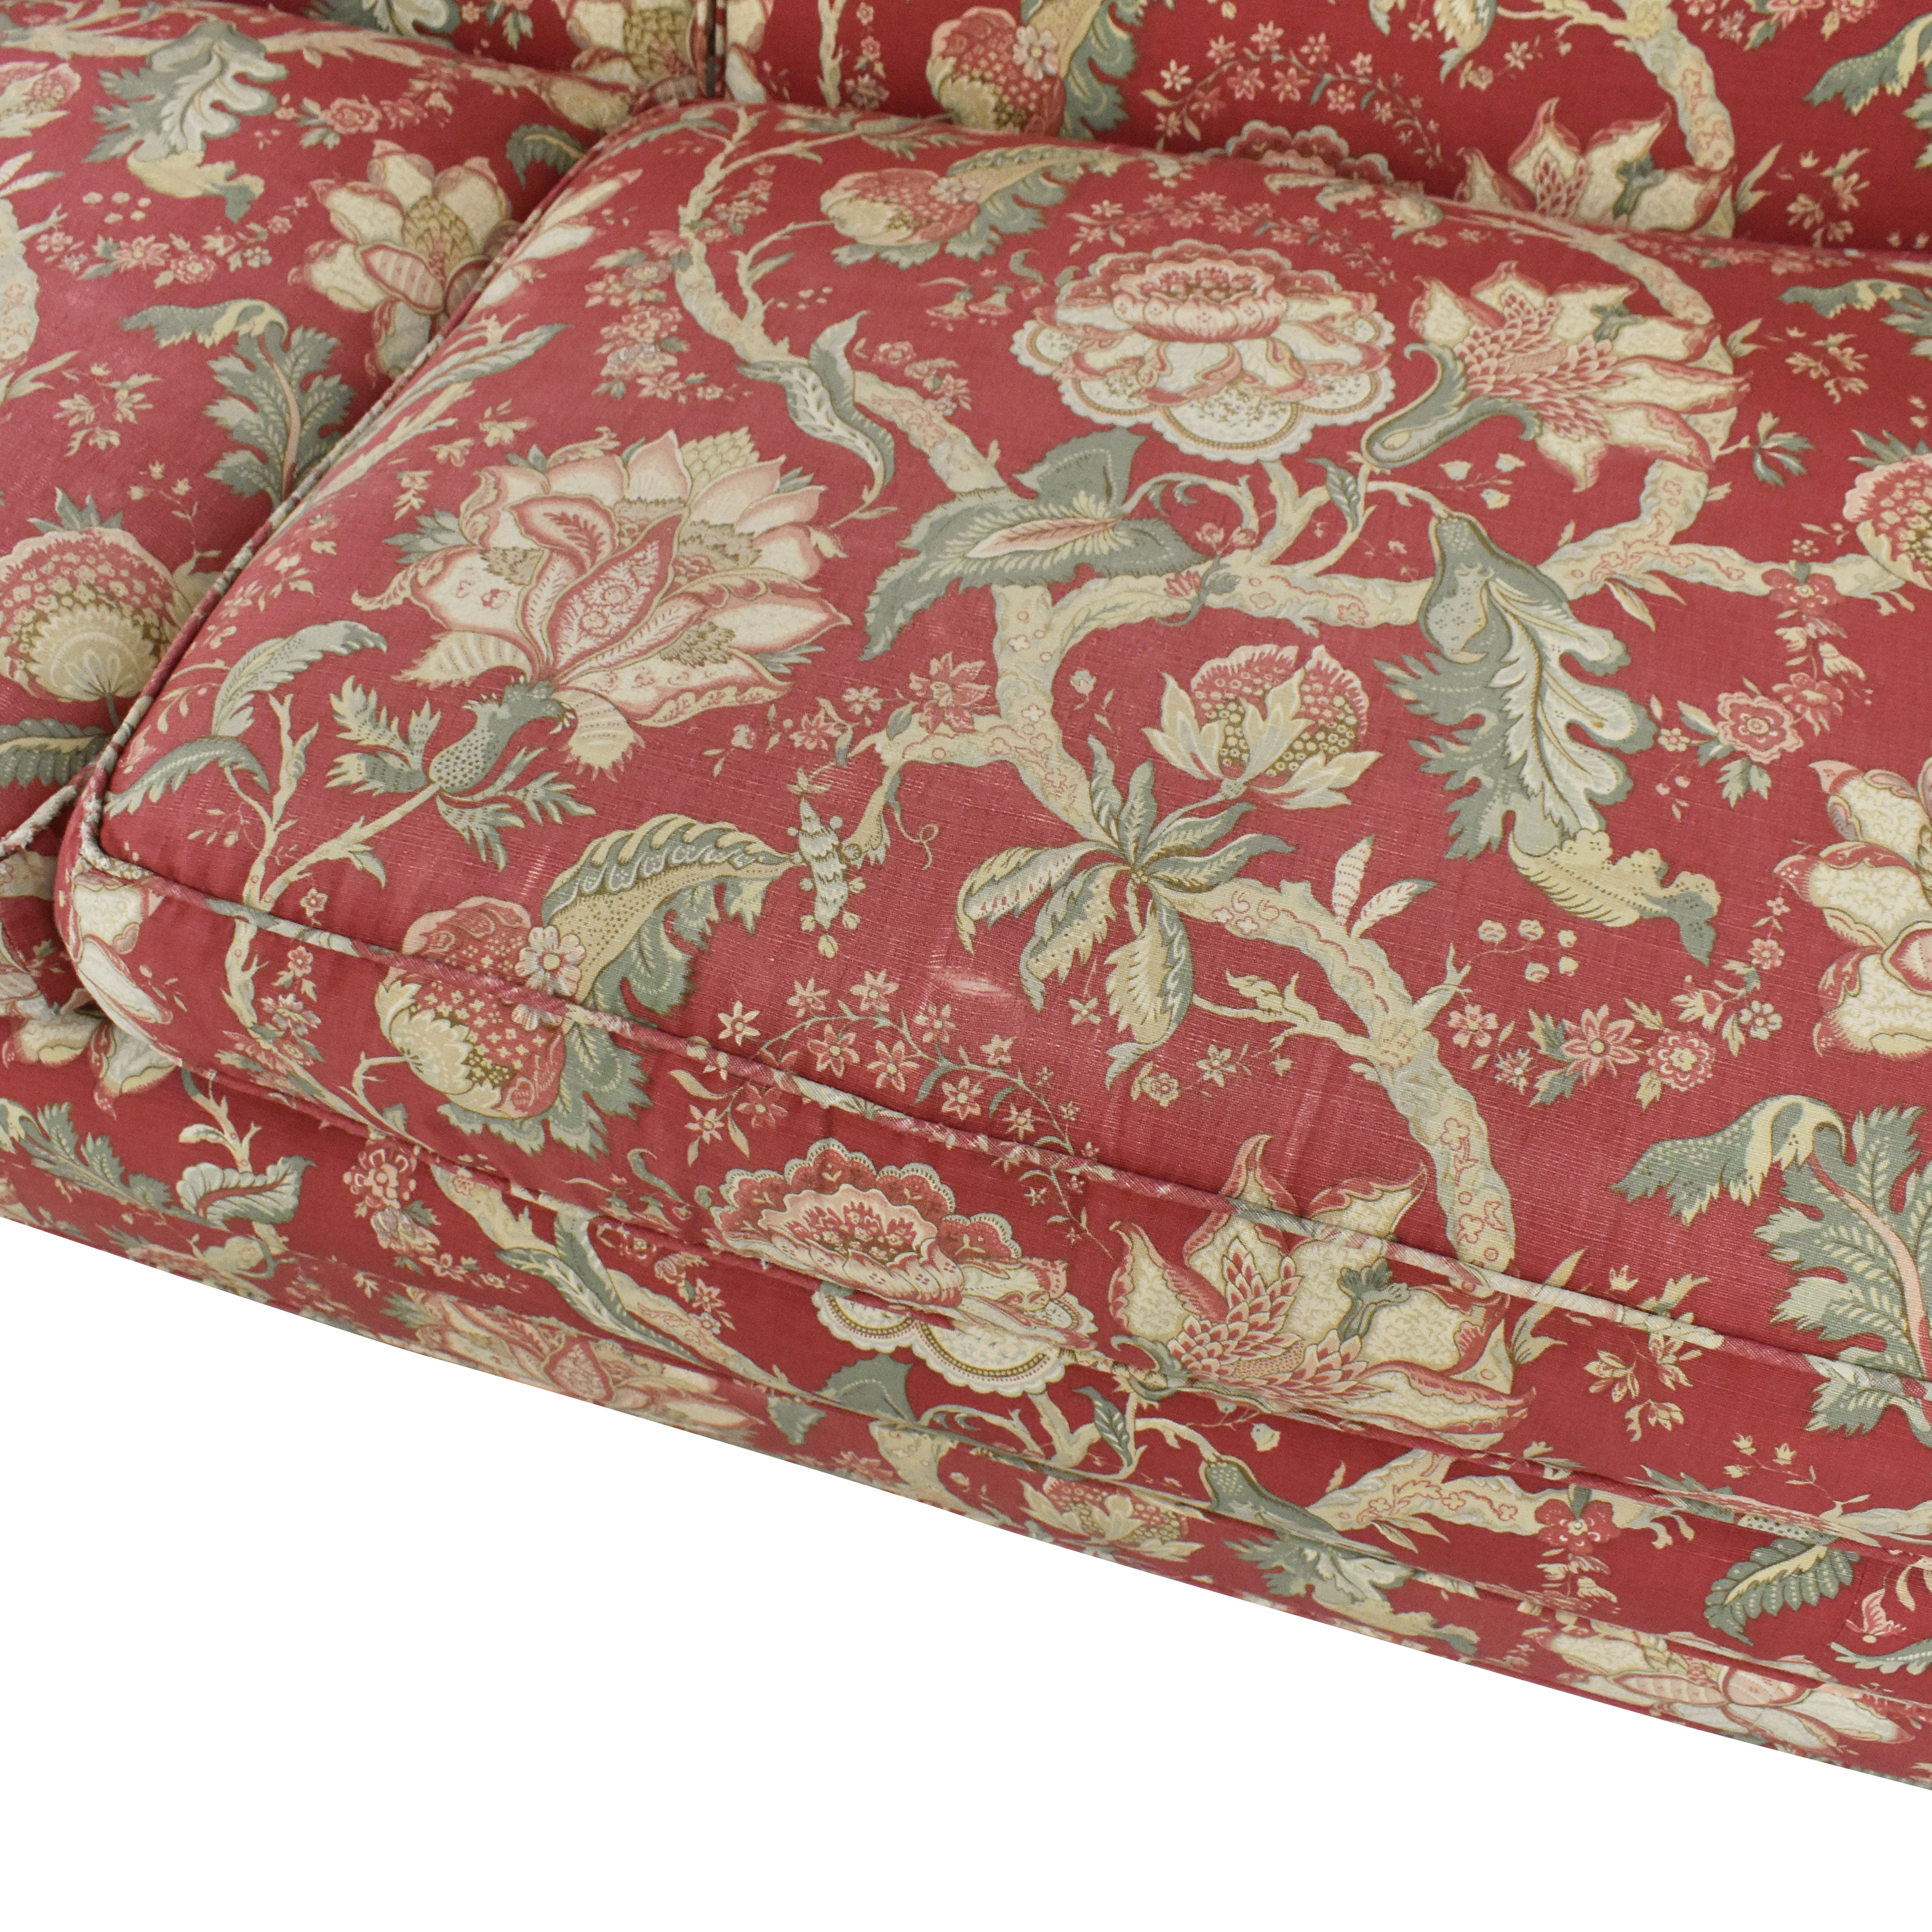 Barclay Butera Home Barclay Butera Home Floral Upholstered Sofa on sale